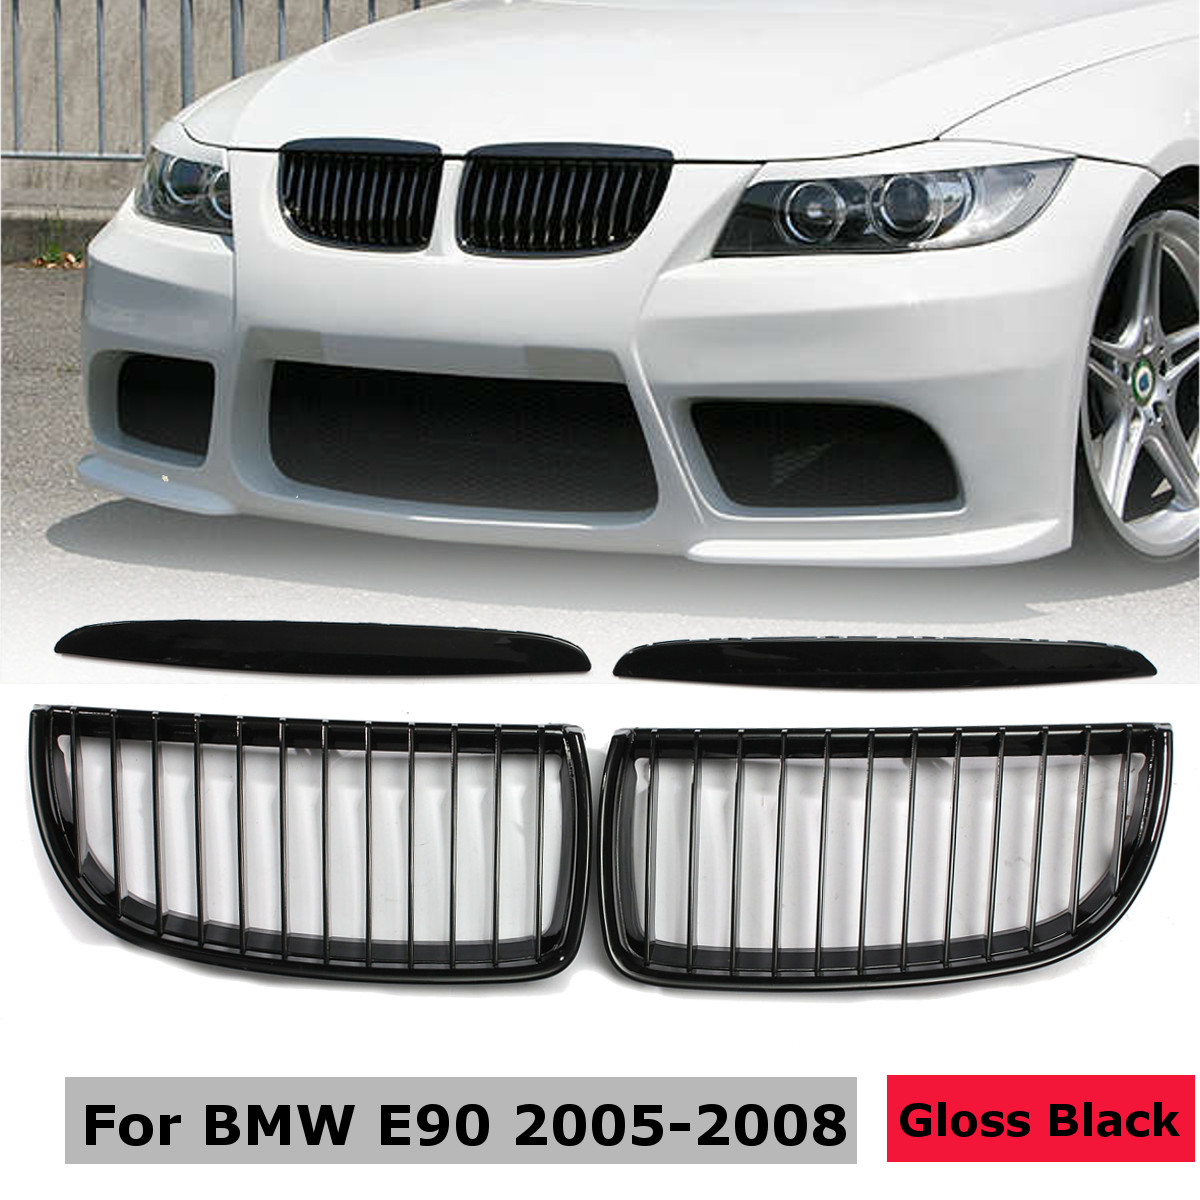 2Pcs Car Front Left Right Center Kidney Grille Grill Gloss Black for BMW E90 3 Series